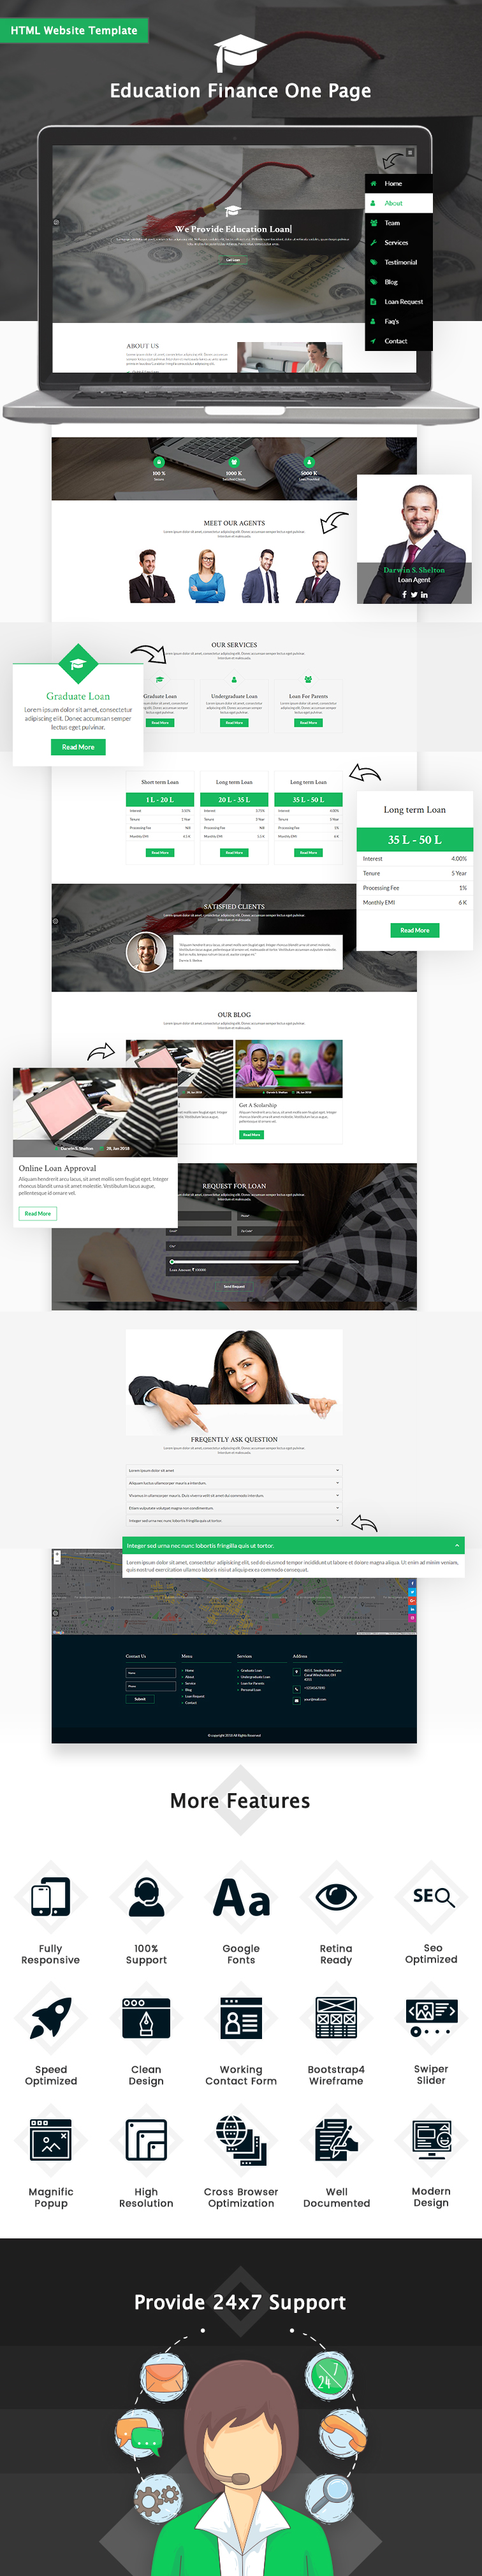 Education Finance One Page HTML Website Template